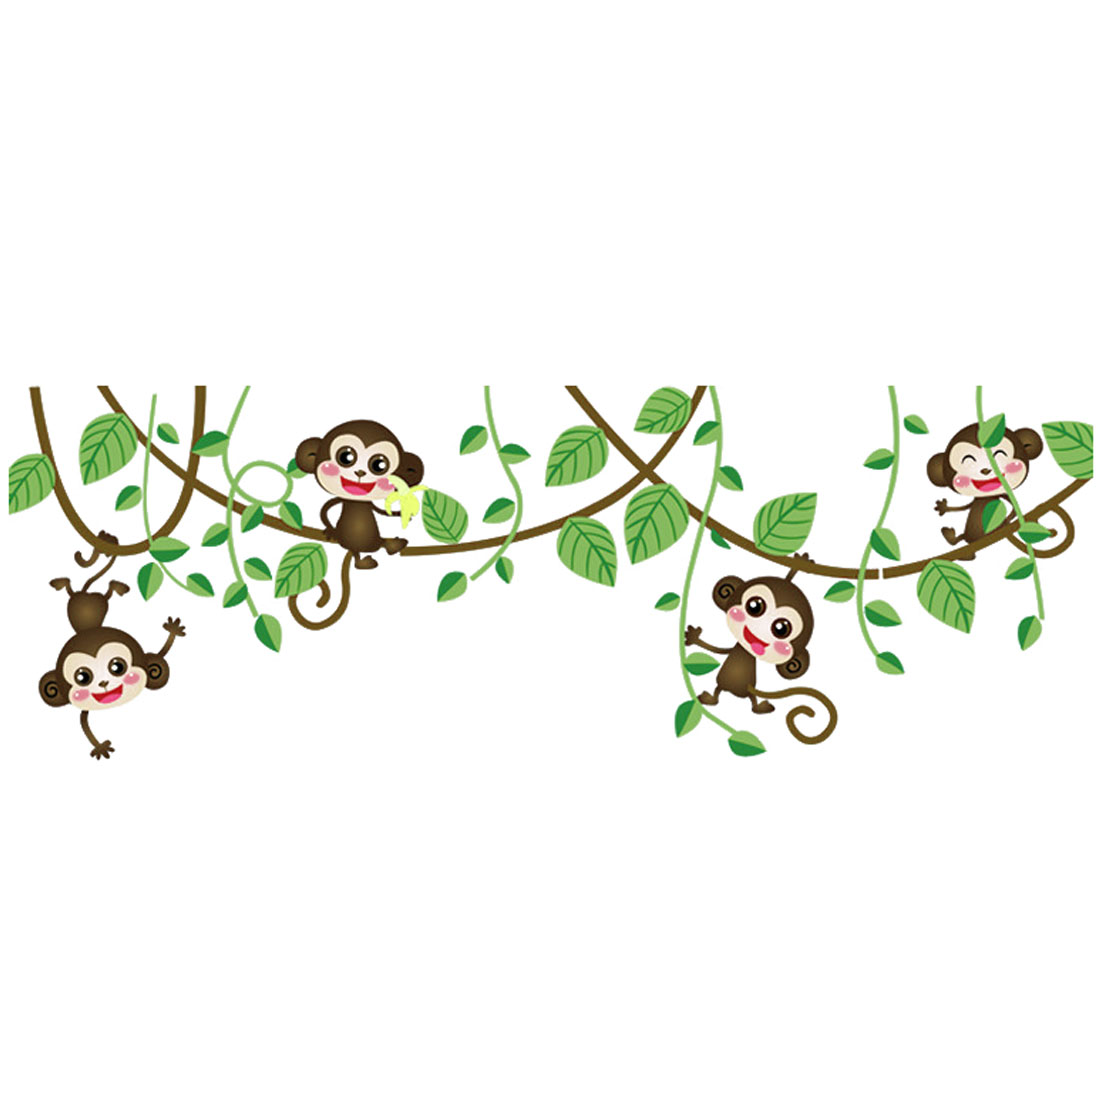 House Bedroom Decor Monkey Branches Pattern Adhesive Wall Sticker 50 x 70cm